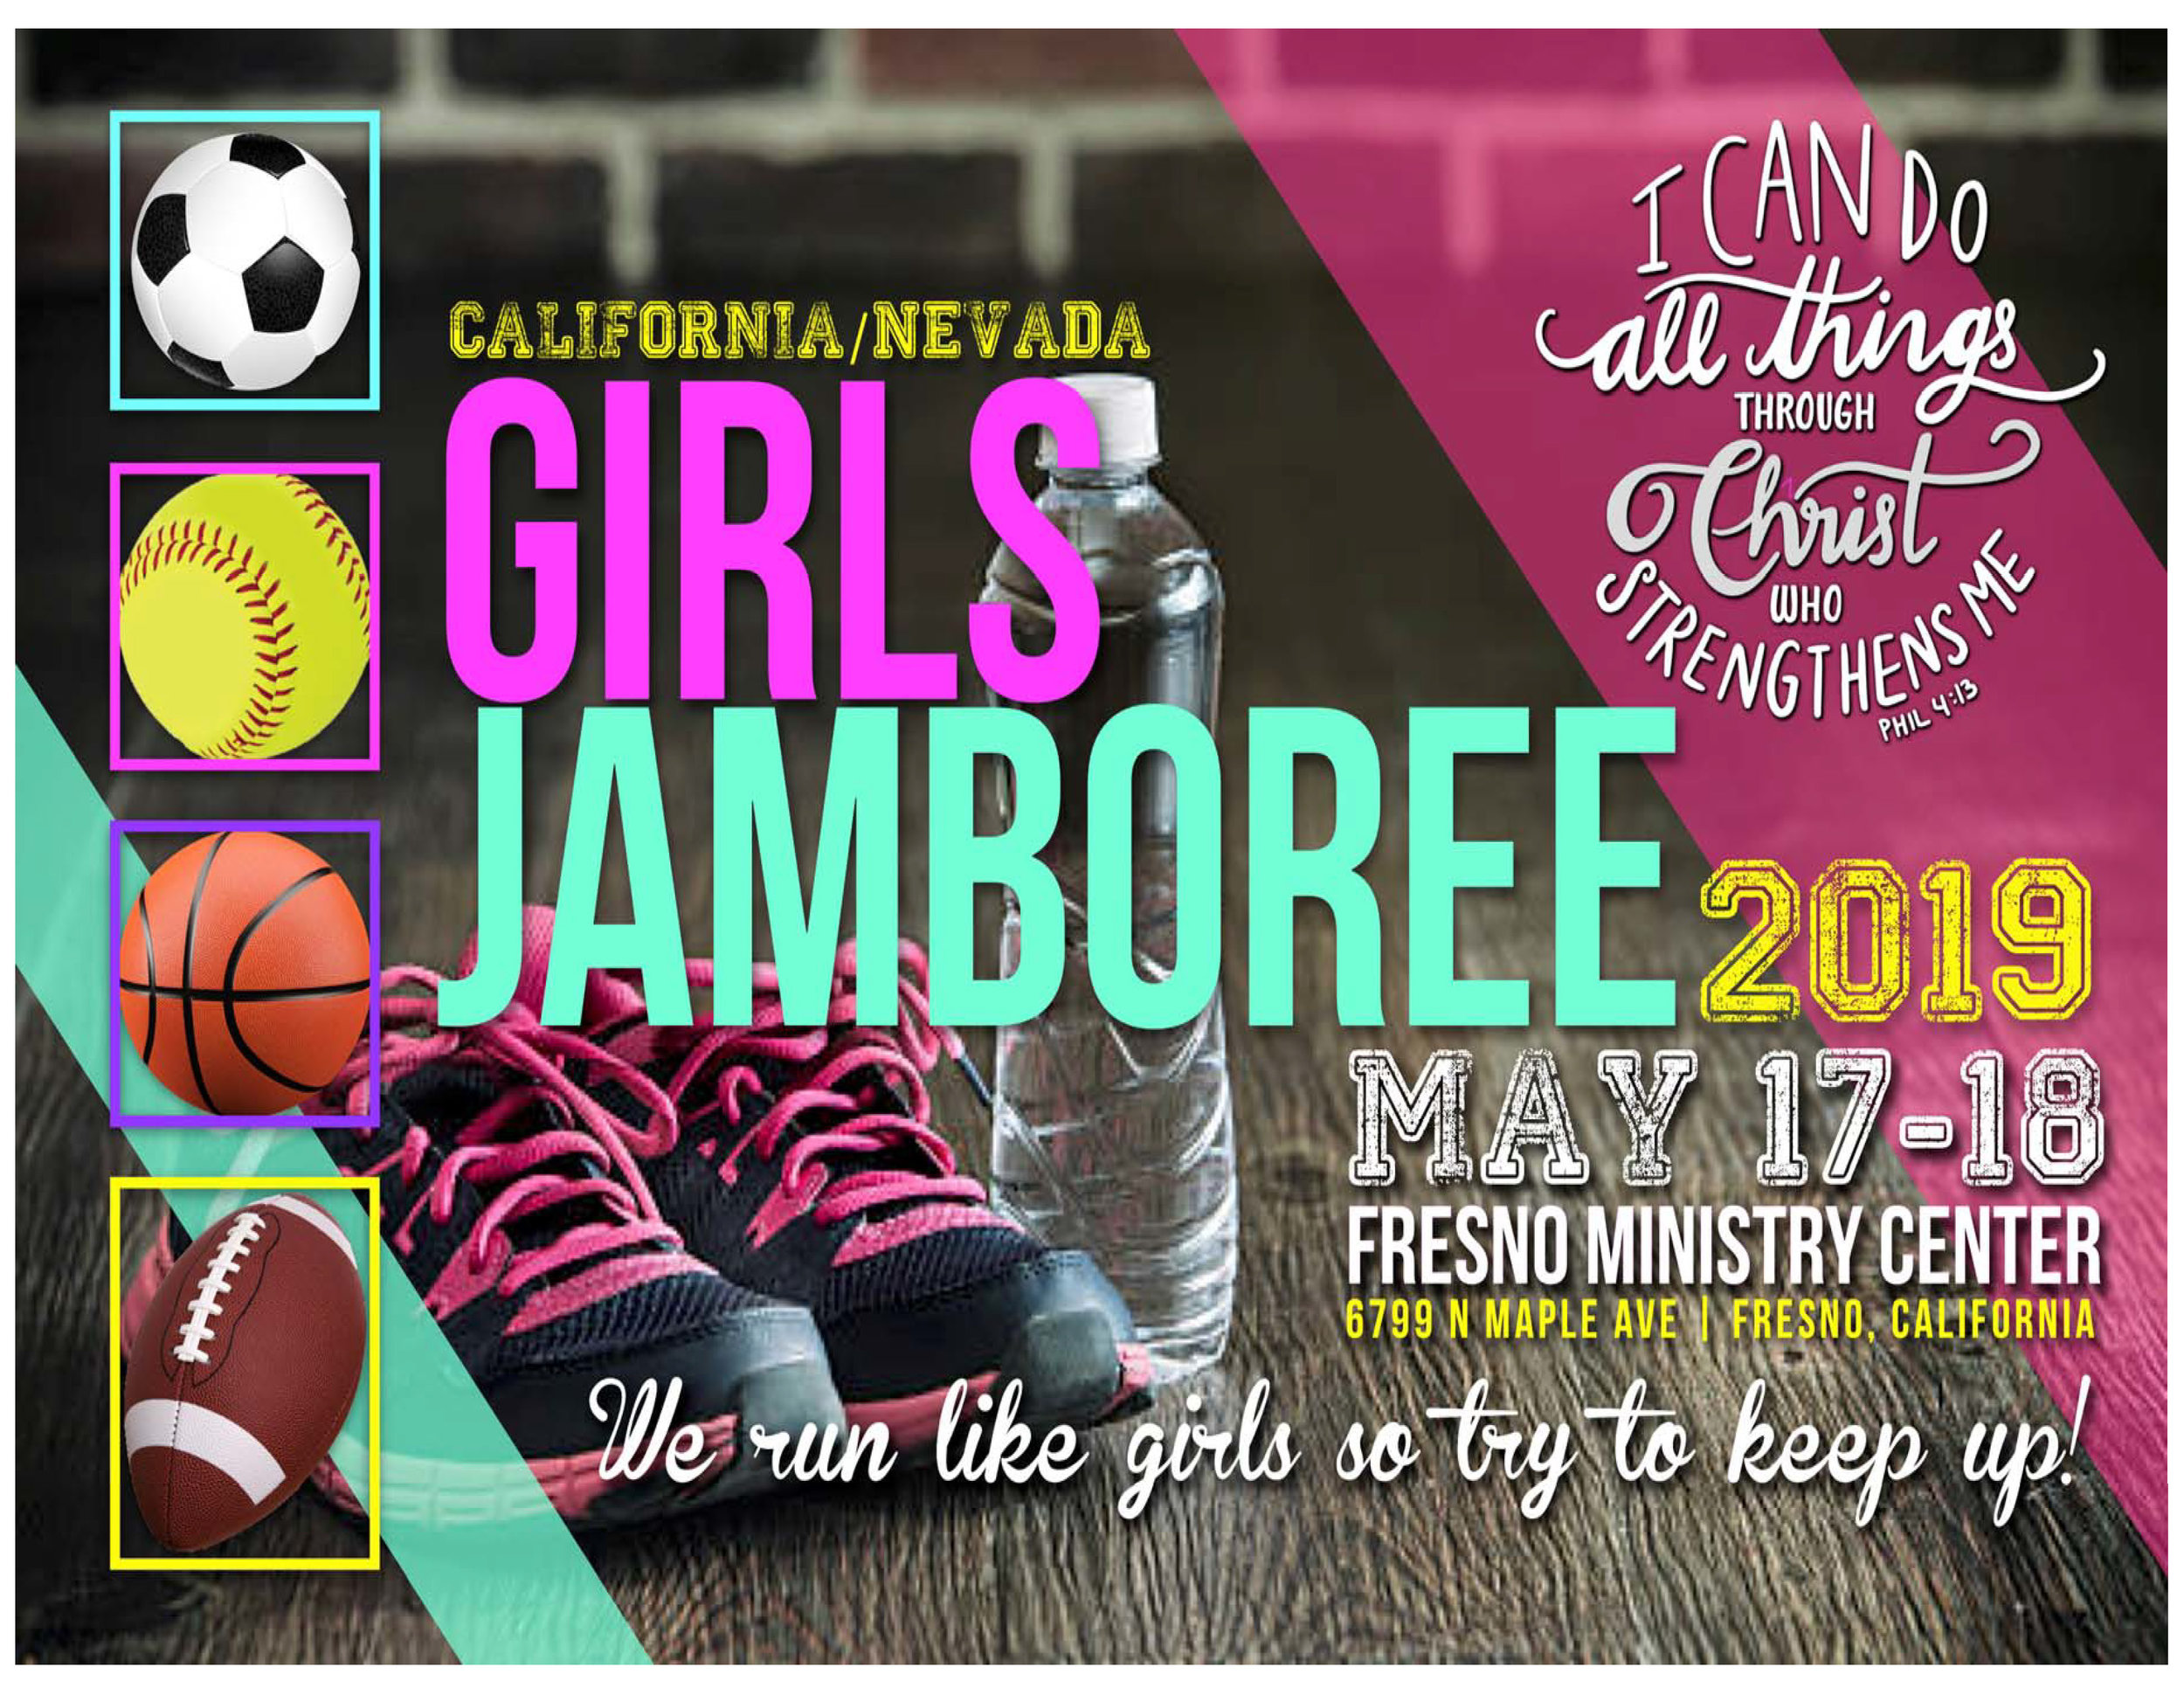 Girls Jamboree 2019 flyer.jpg